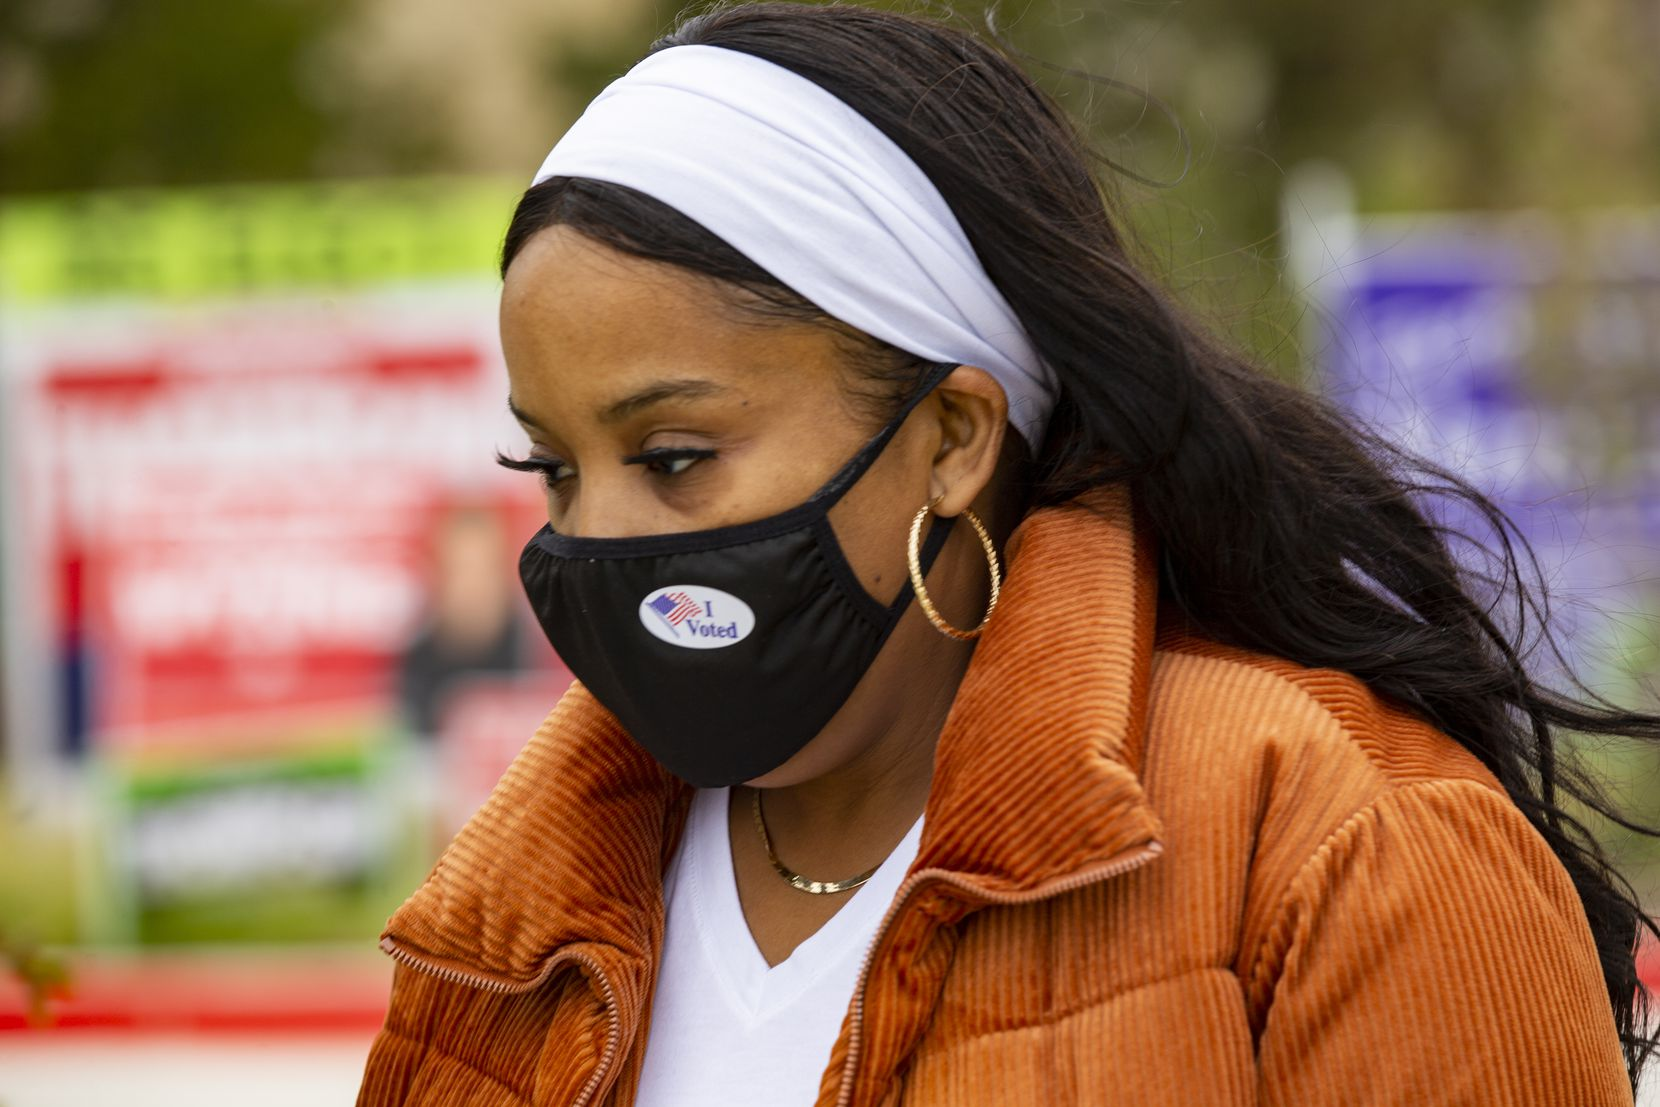 """Wanda Brooks wears an """"I voted"""" sticker on her mask after voting at the Collin College campus in Wylie on Thursday, Oct. 29, 2020. (Juan Figueroa/ The Dallas Morning News)"""